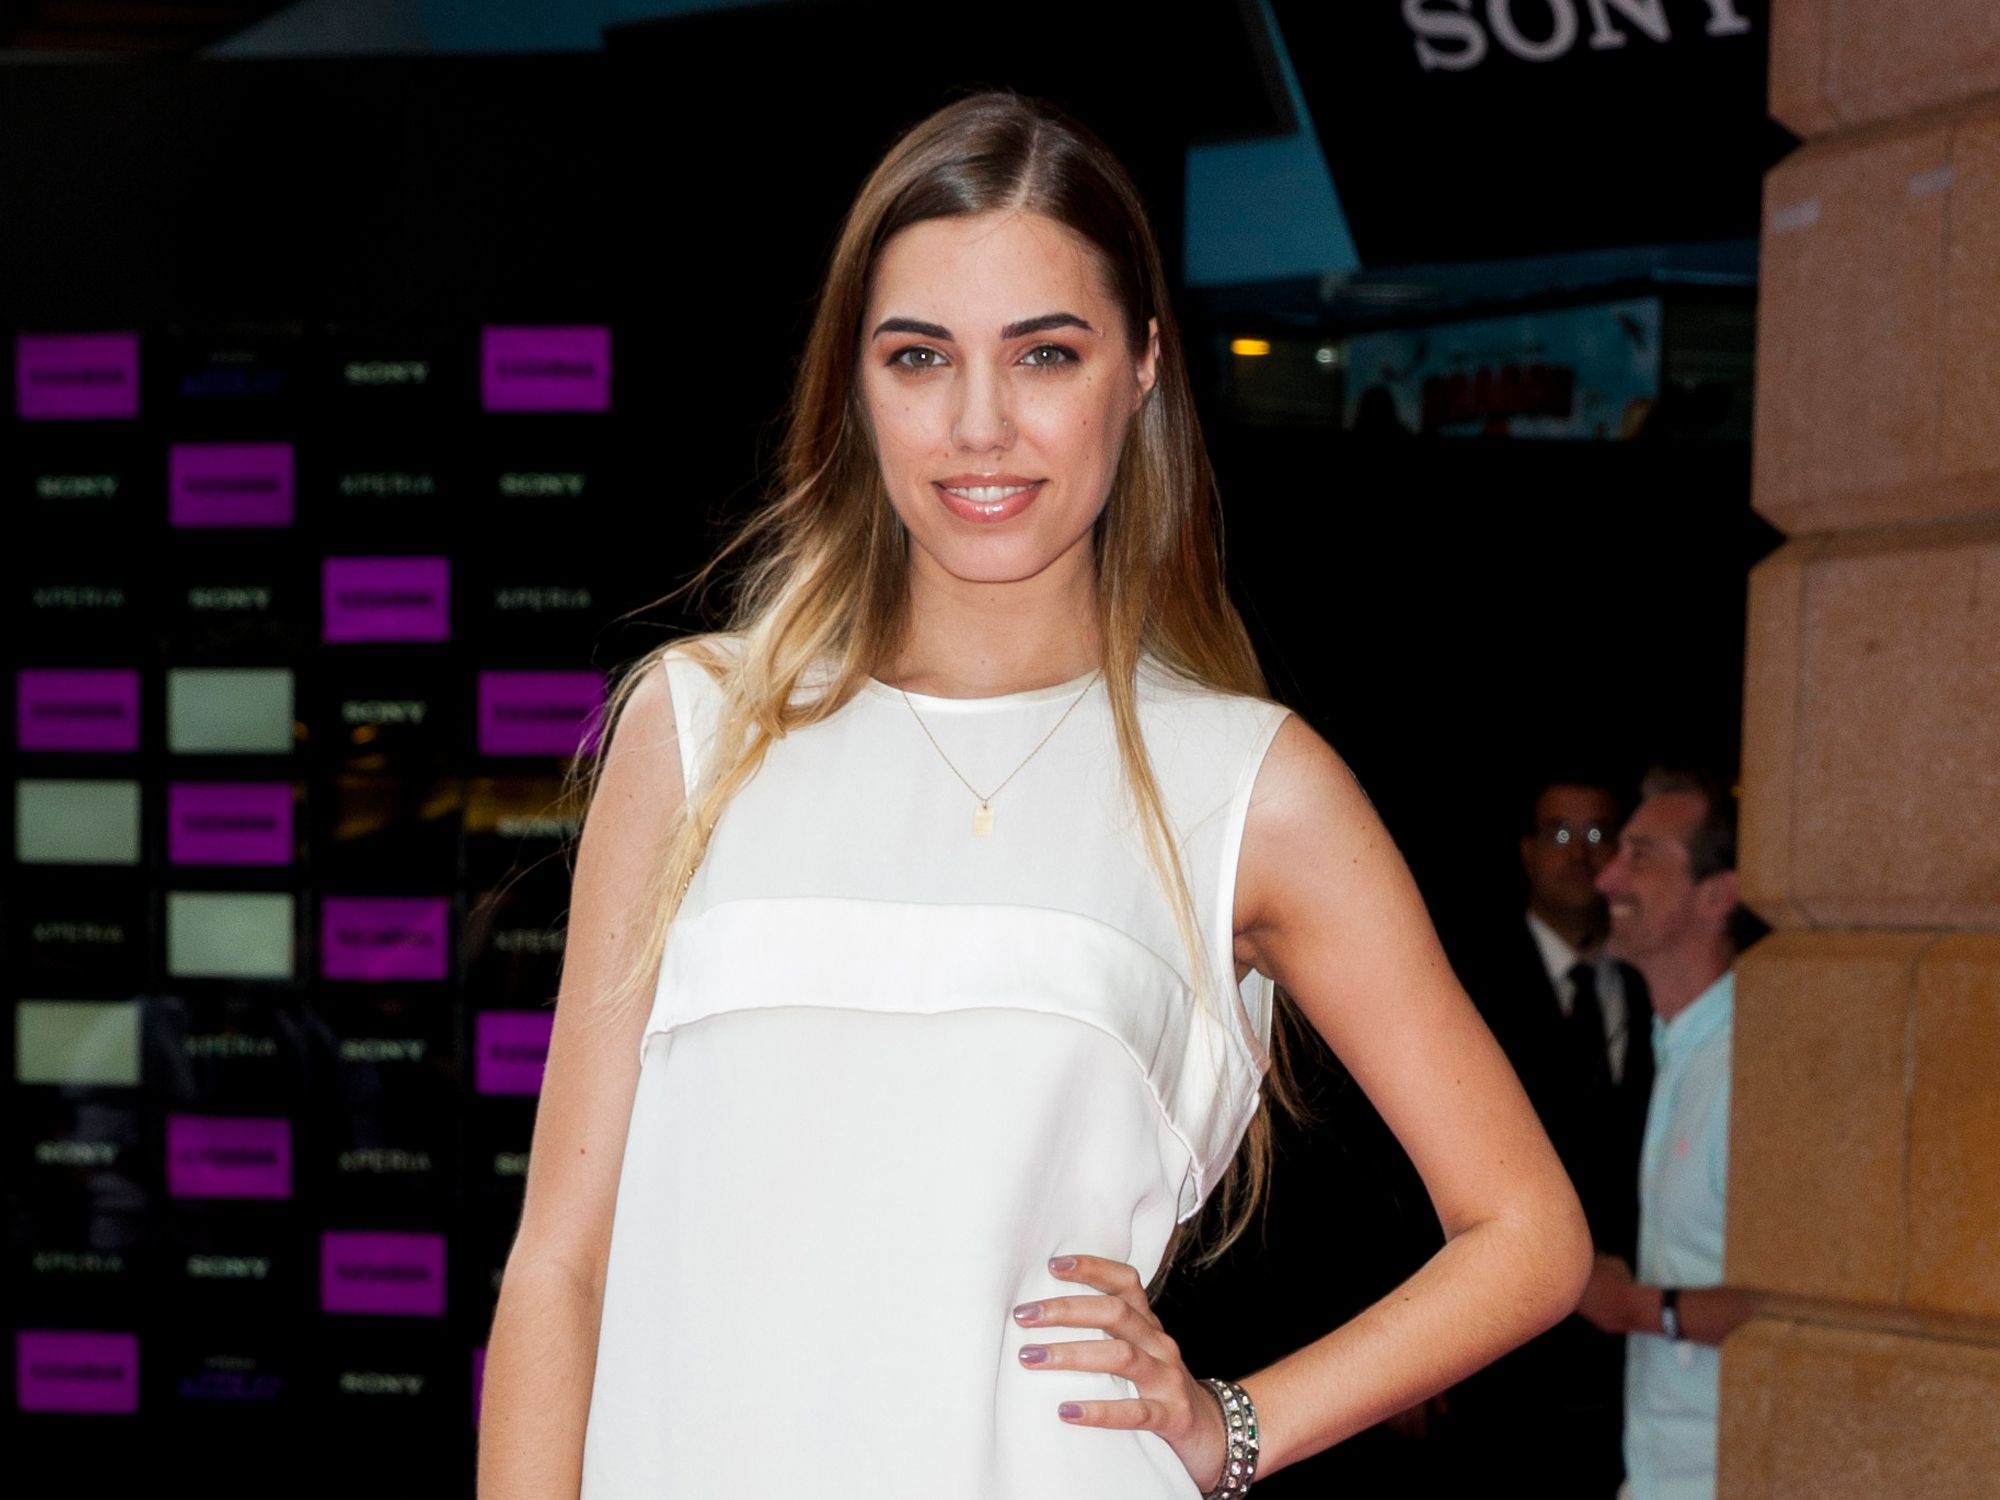 Amber Le Bon Nude women we love this week